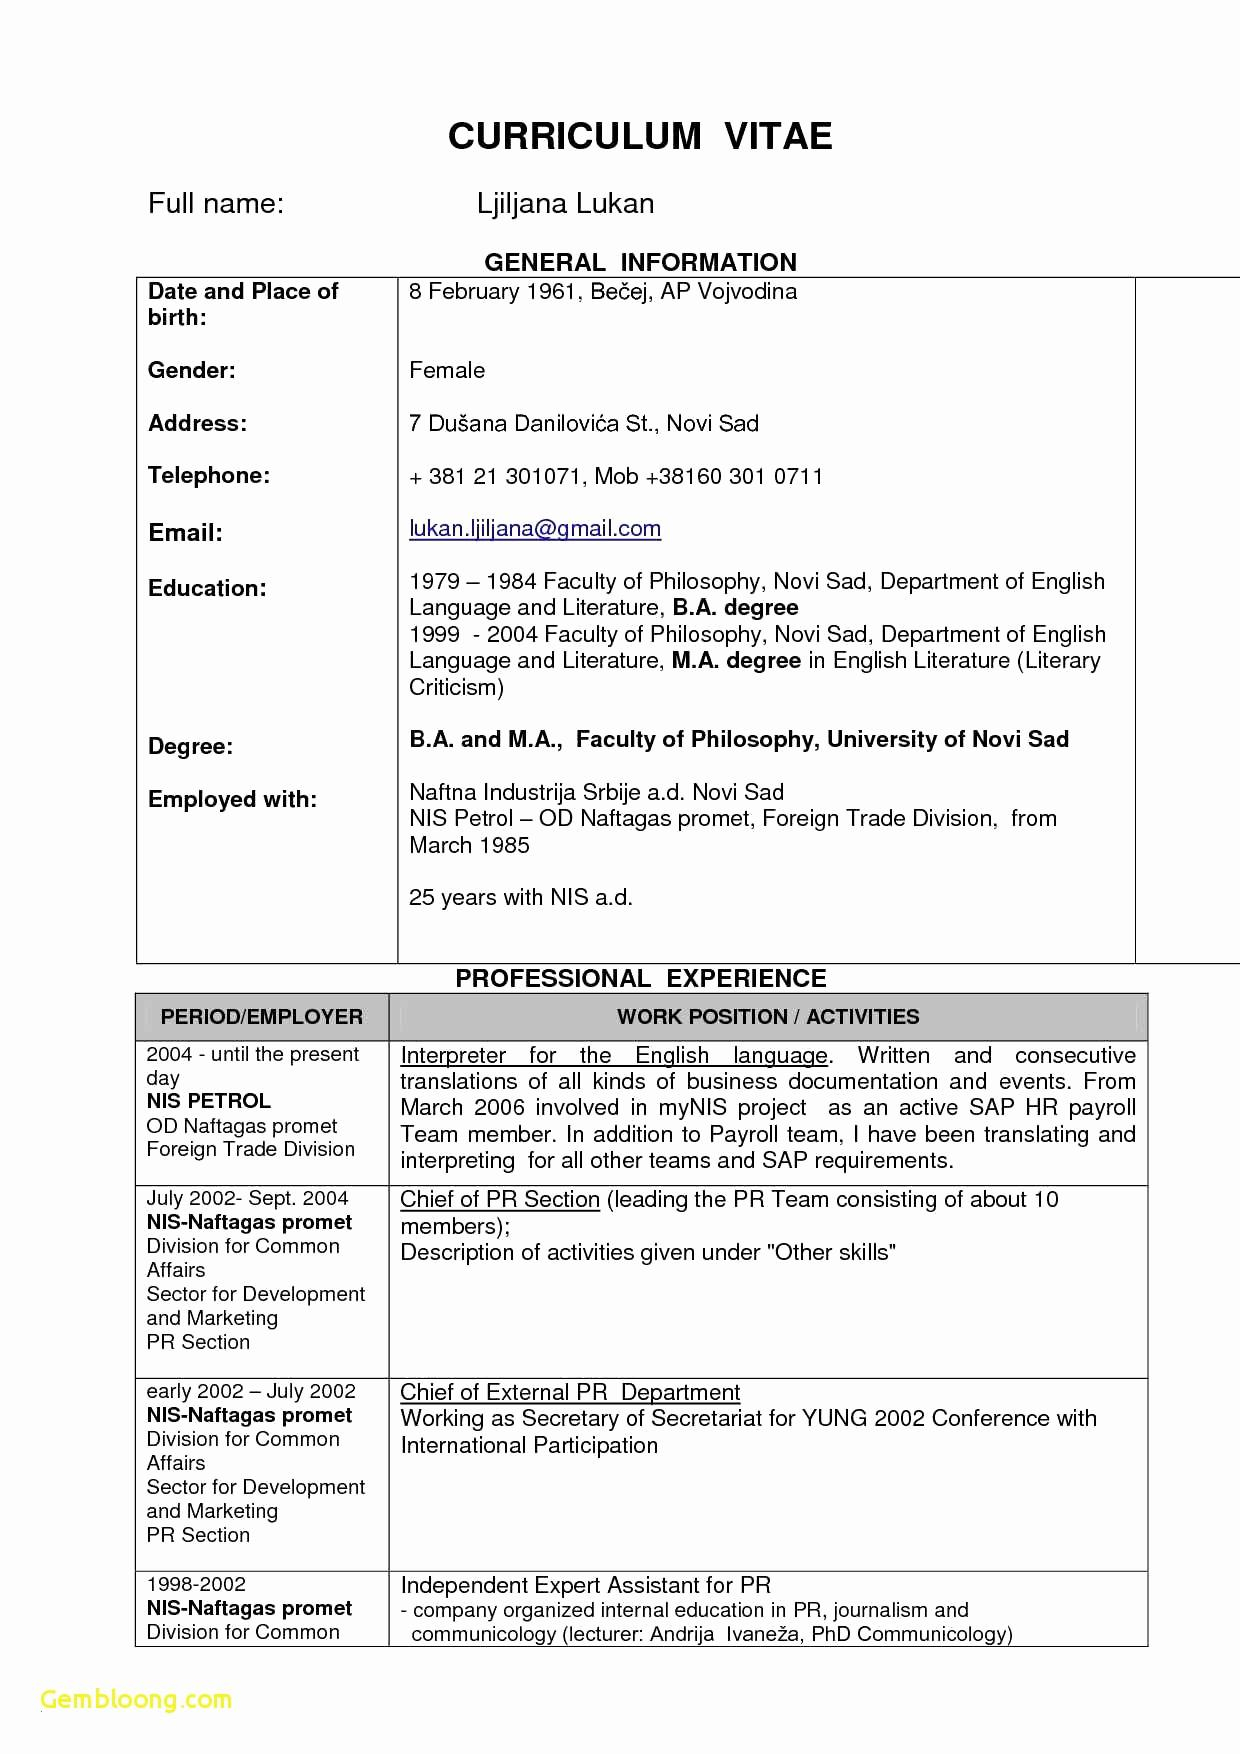 Chronological Resume Template Pdf - Resume format Chronological Best Sample Chronological Resume